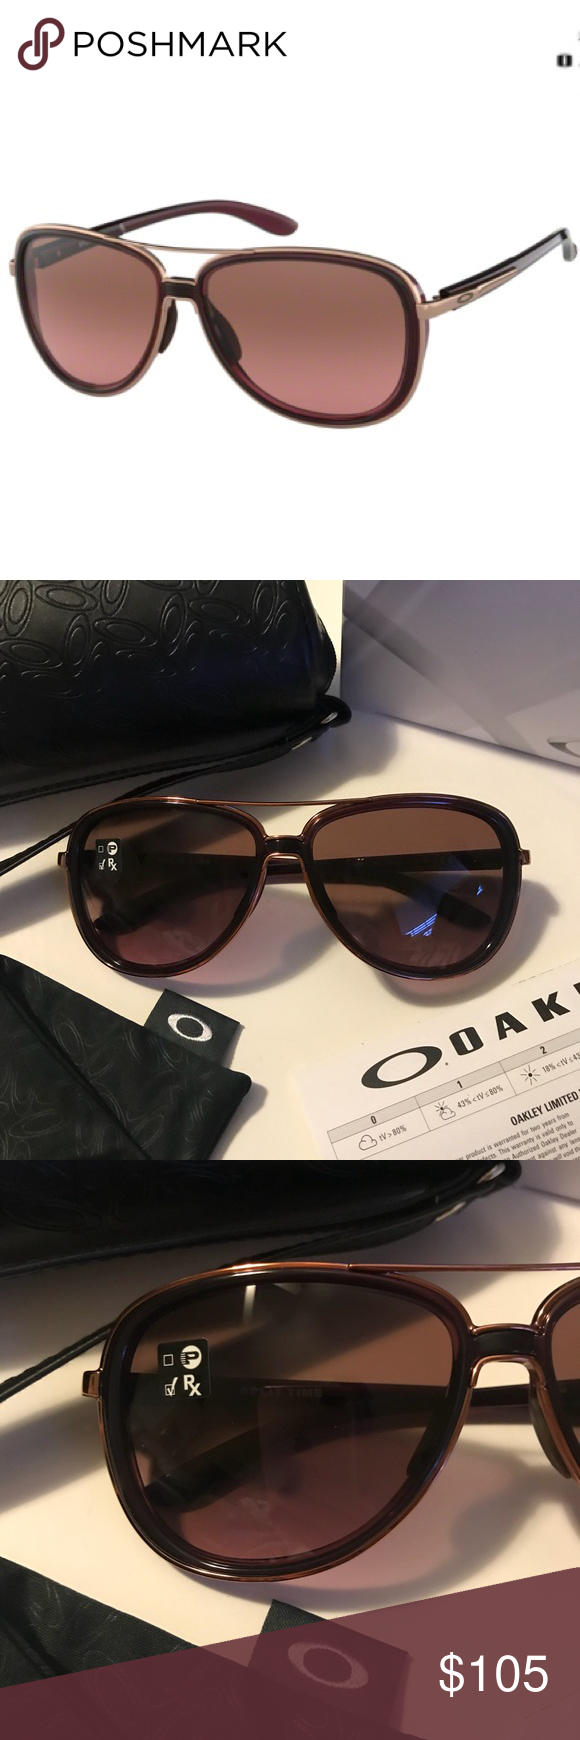 cd9a28906e2 Oakley Split Time Sunglasses New. Never worn. Perfect condition. Were on  display at